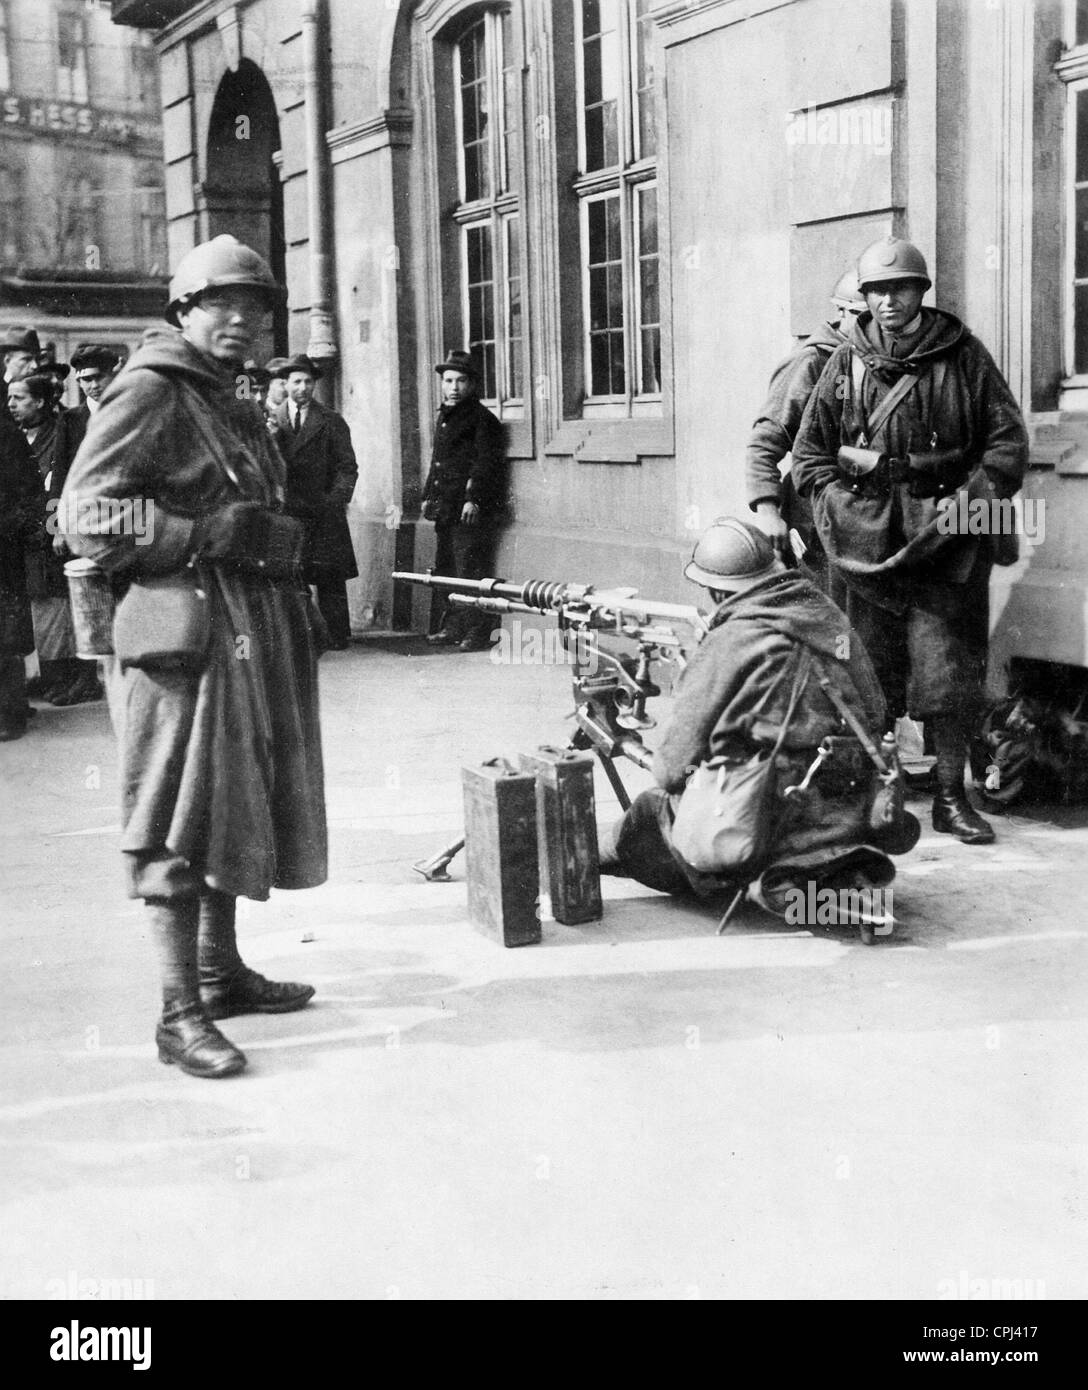 French soldiers in Frankfurt, 1923 - Stock Image